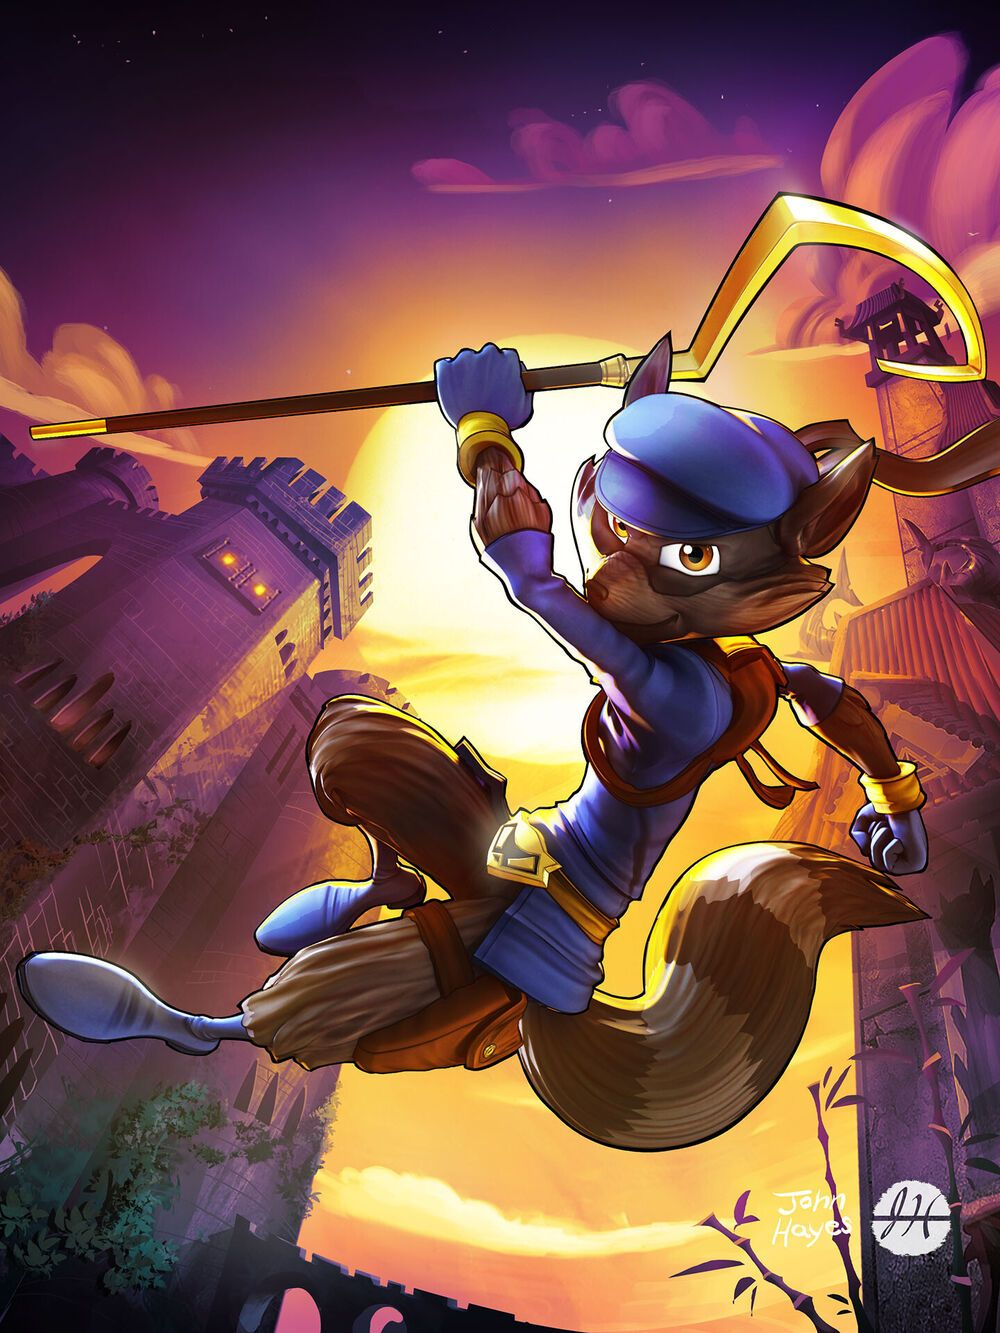 Main Render Of Sly Cooper From Thieves In Time By John Hayes In 2021 Sly Sly Cooper Art Pokemon Mix